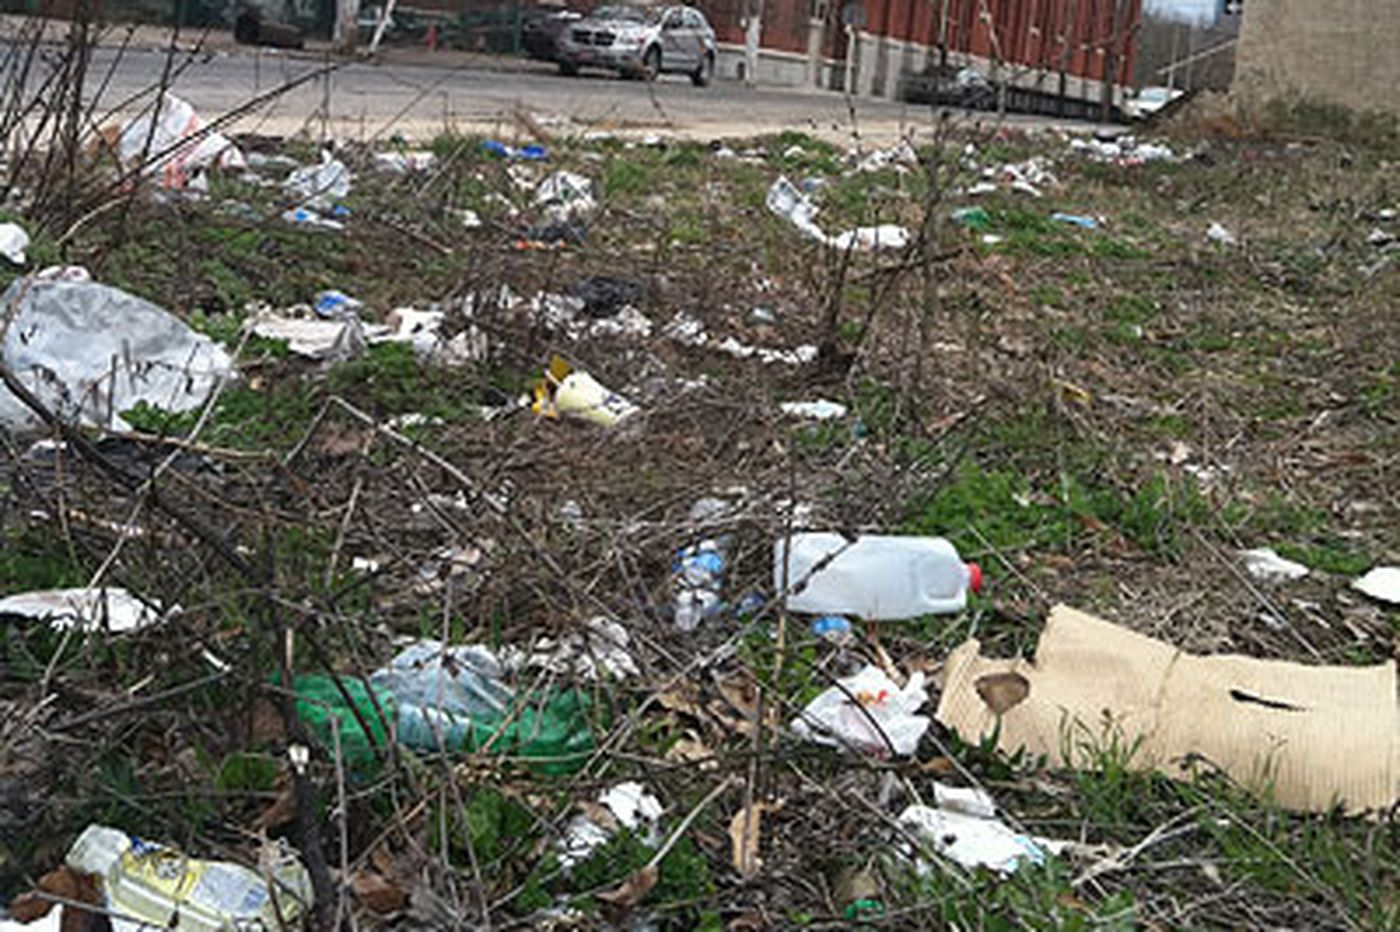 Litterally speaking, Philly's in a world of dirt